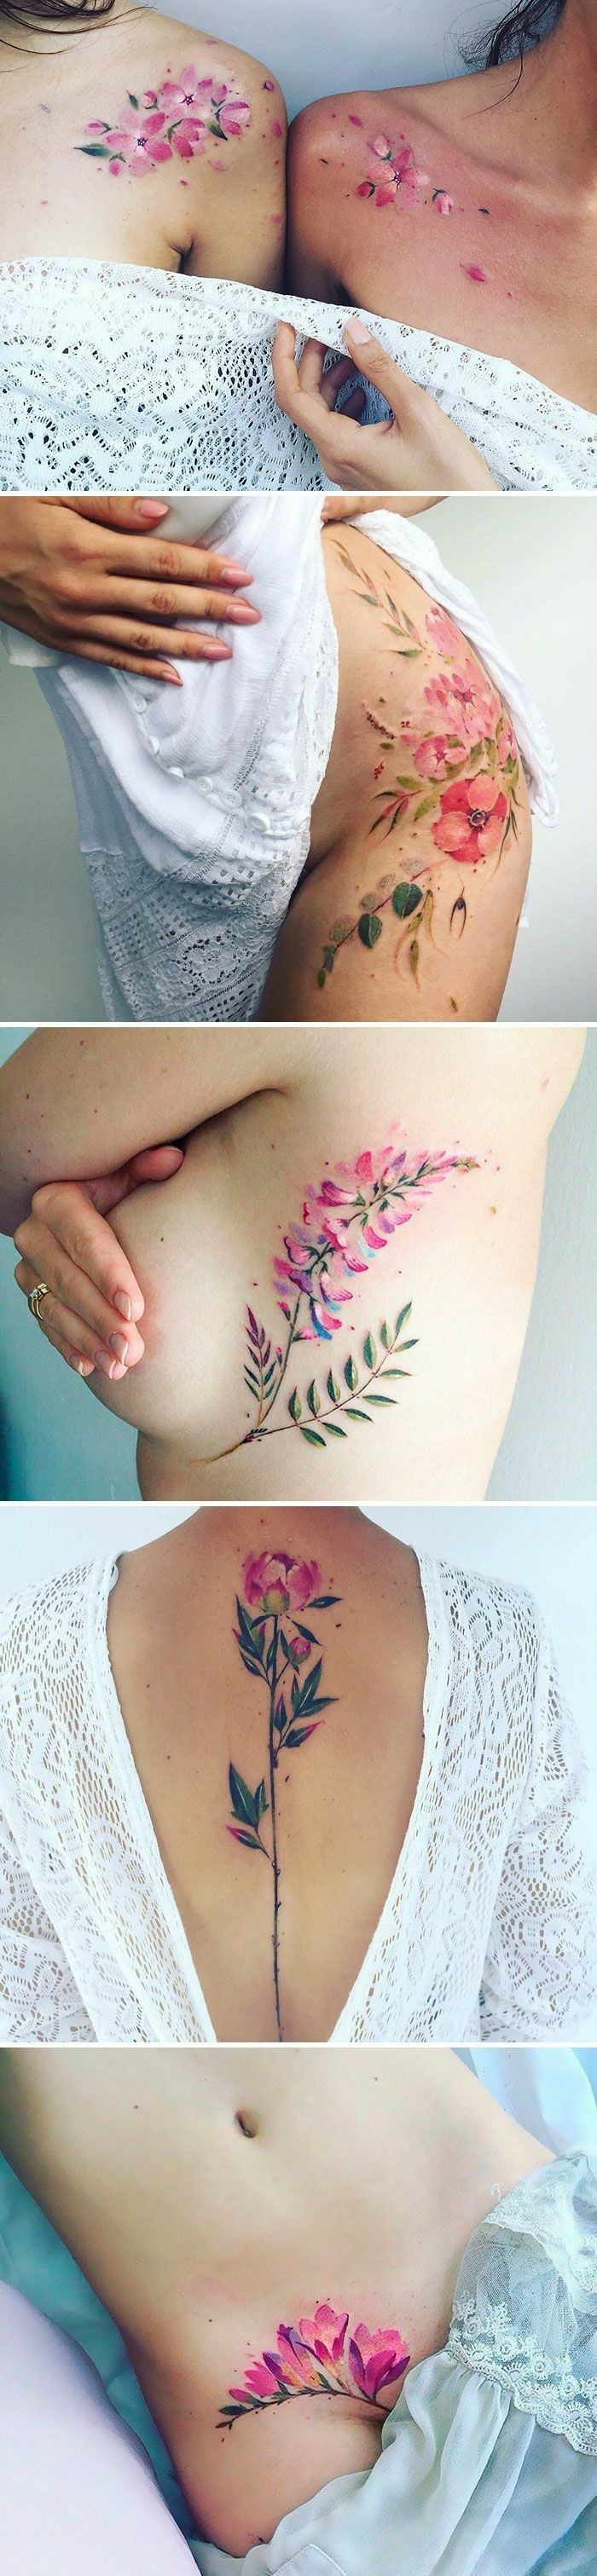 "not really ""into"" tattoos like that but these are gorgeous!!"